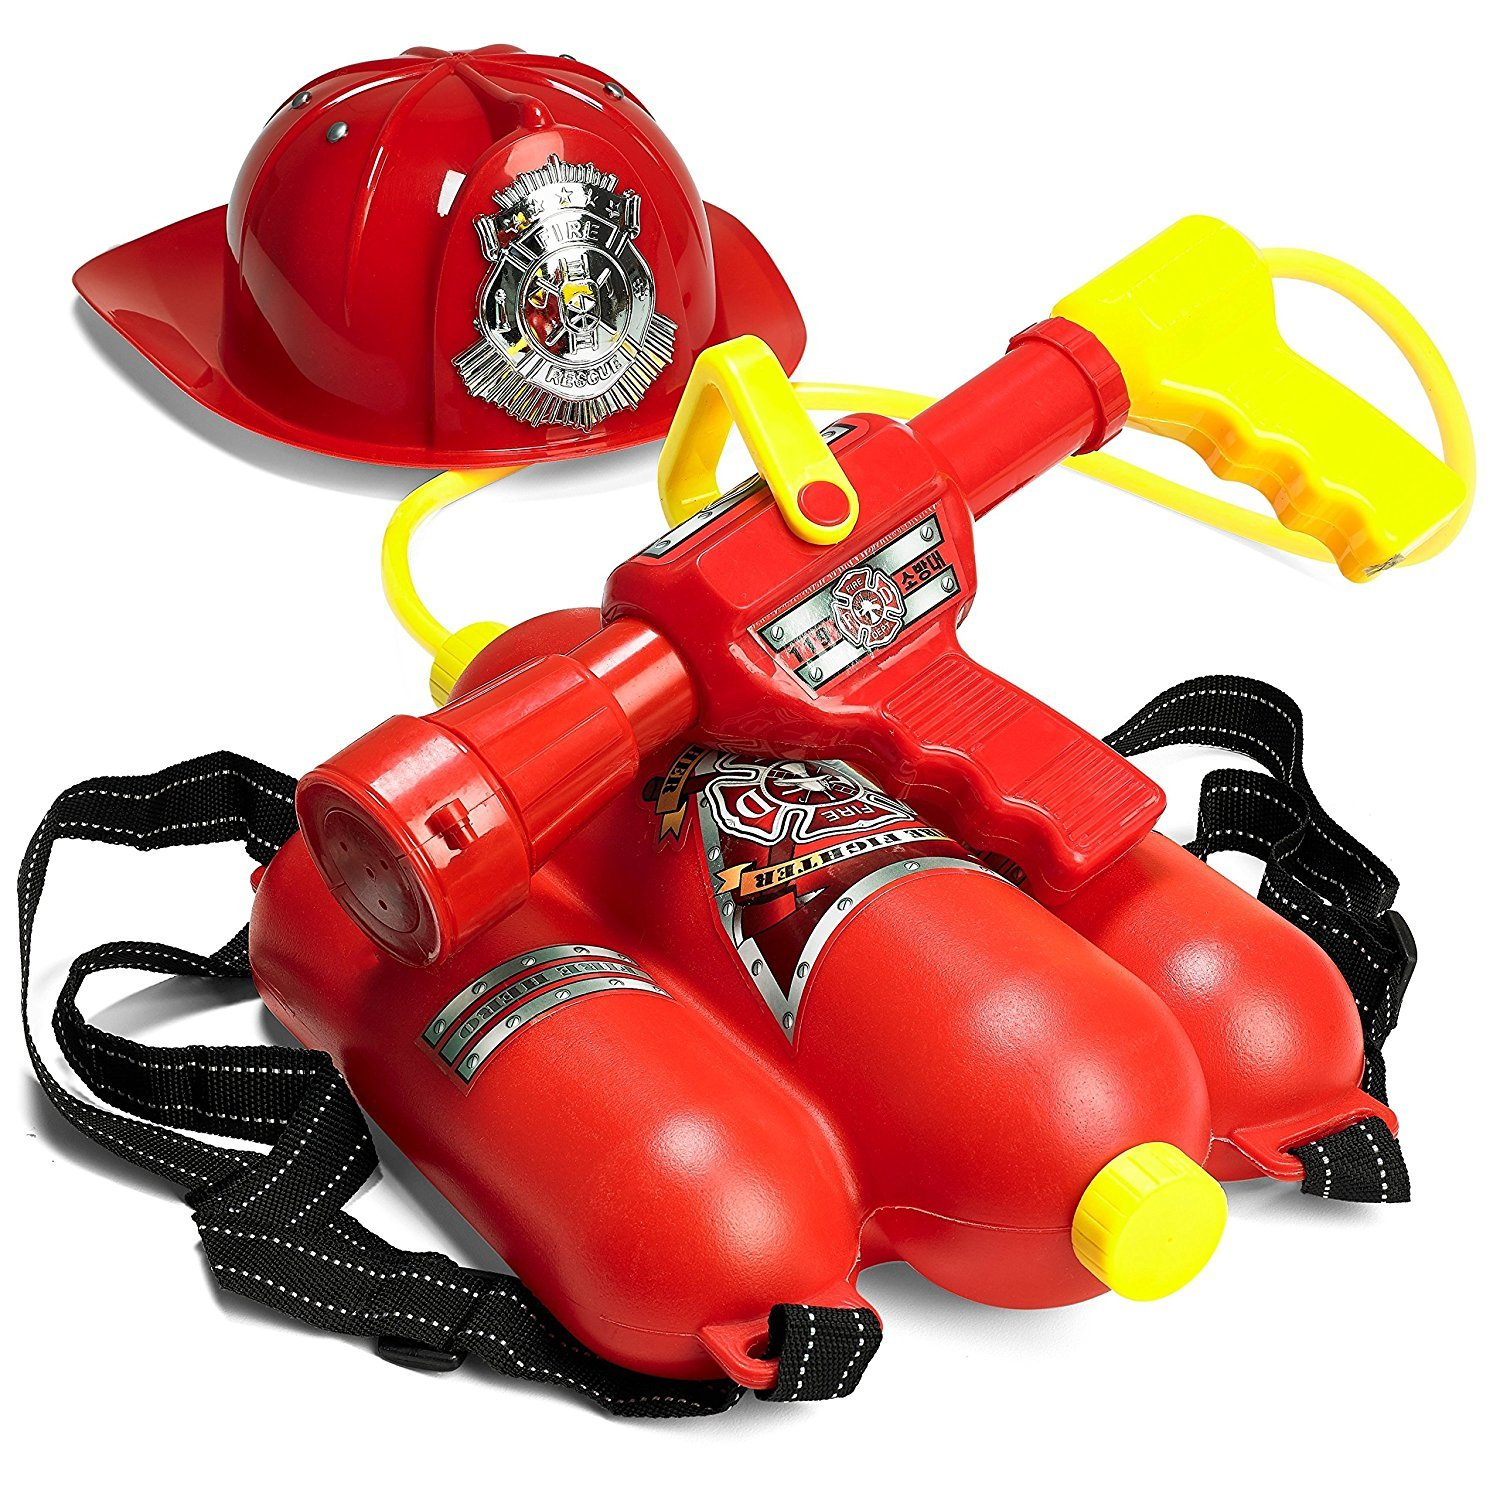 Prextex Fireman Backpack Water Shooter & Blaster with Fire Hat- Water Gun Beach Toy & Outdoor Sports Toy by Prextex